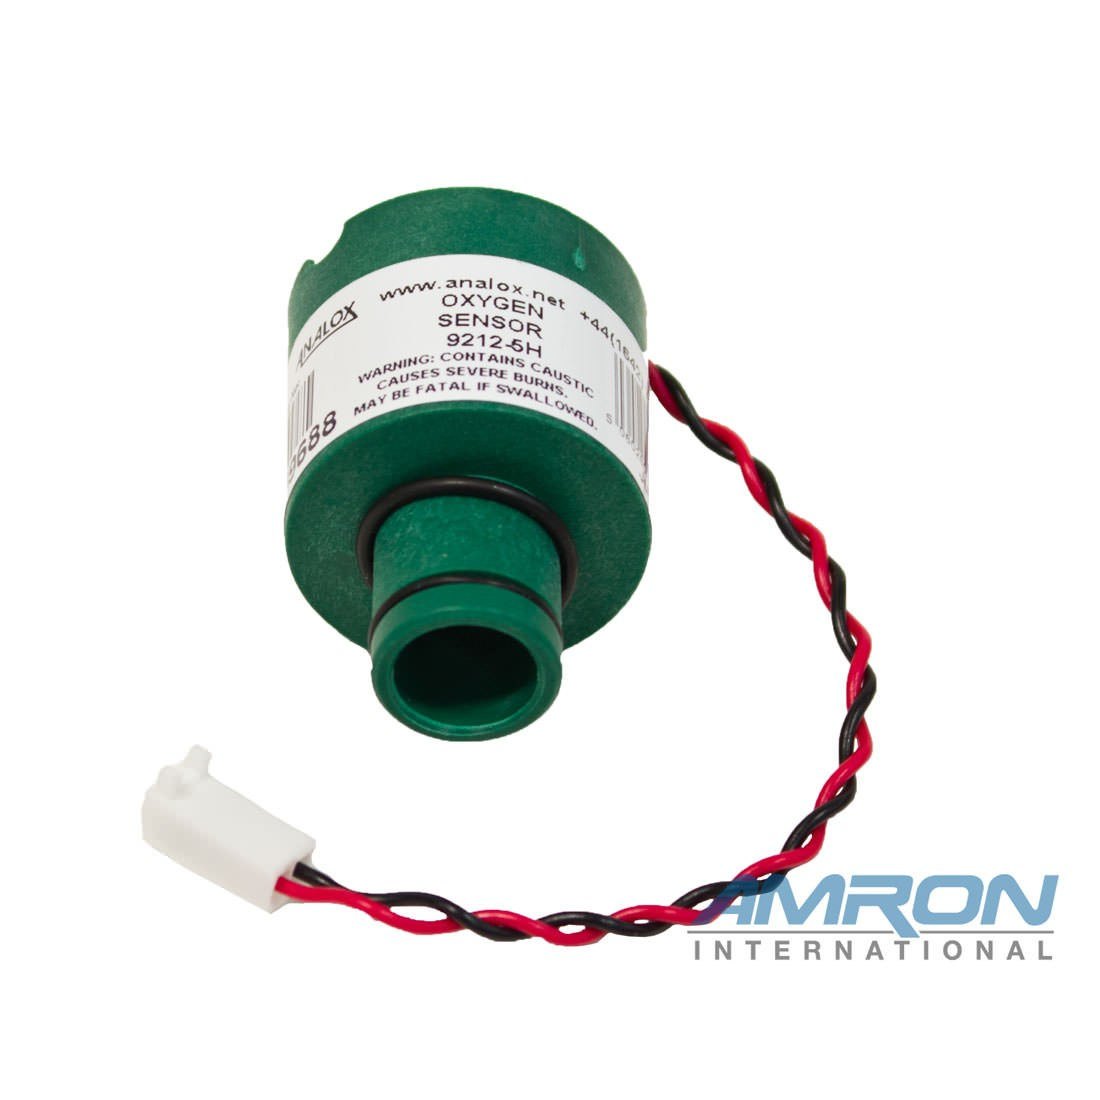 Analox Replacement Oxygen (O2) Sensor (O-2 Bar) for 100HYP MKIII and HYP O2 Portable Monitor 9100-9212-5H